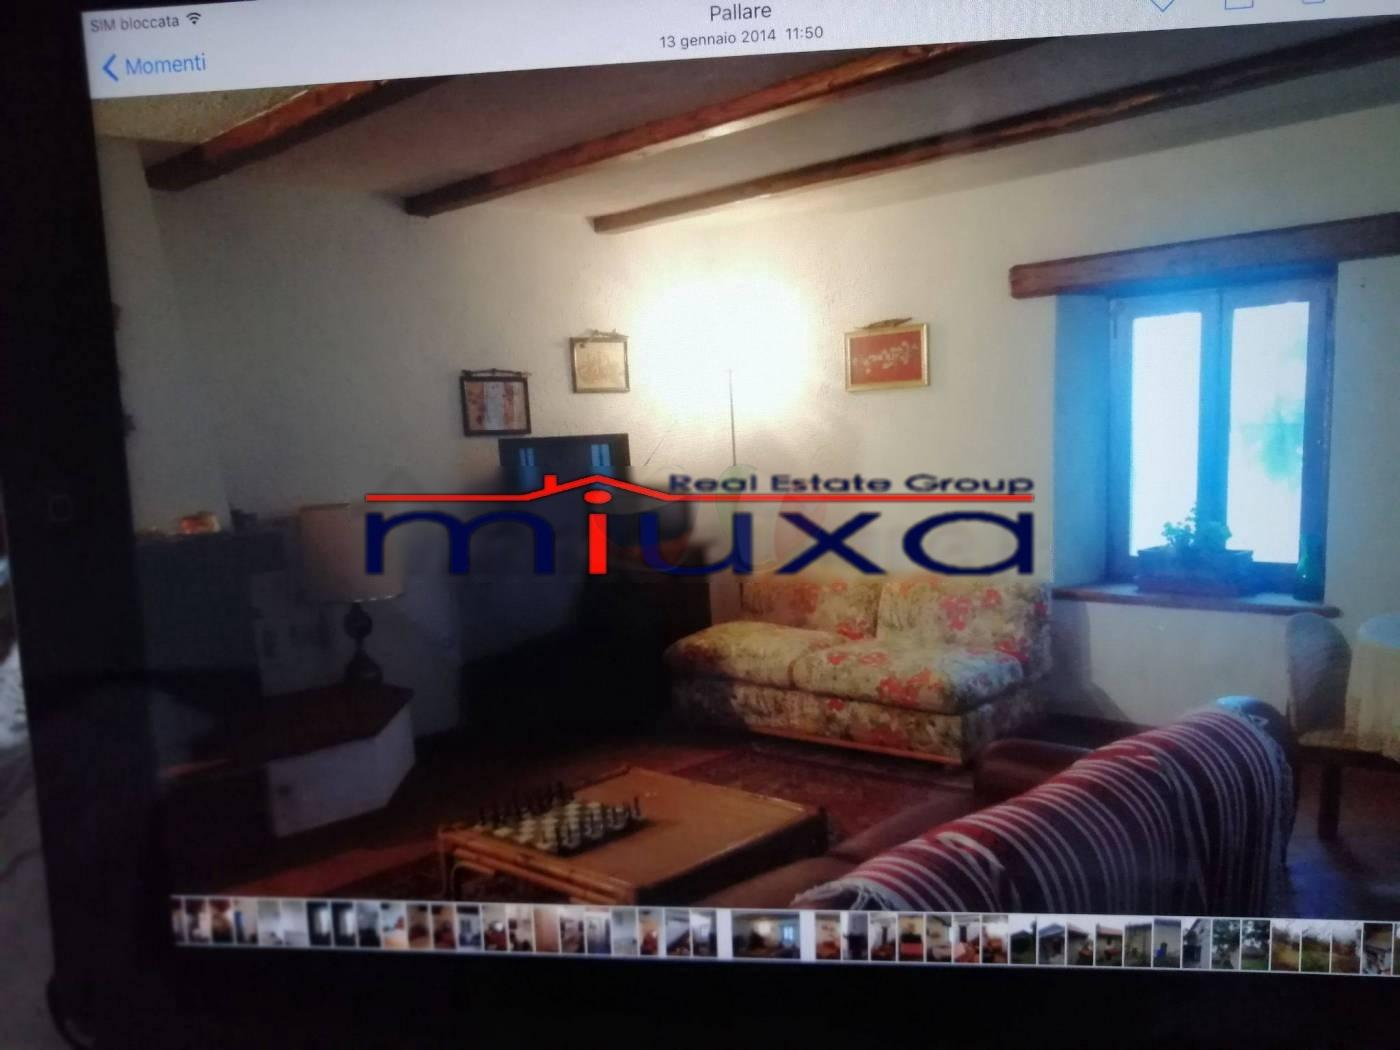 House for sale in Italy